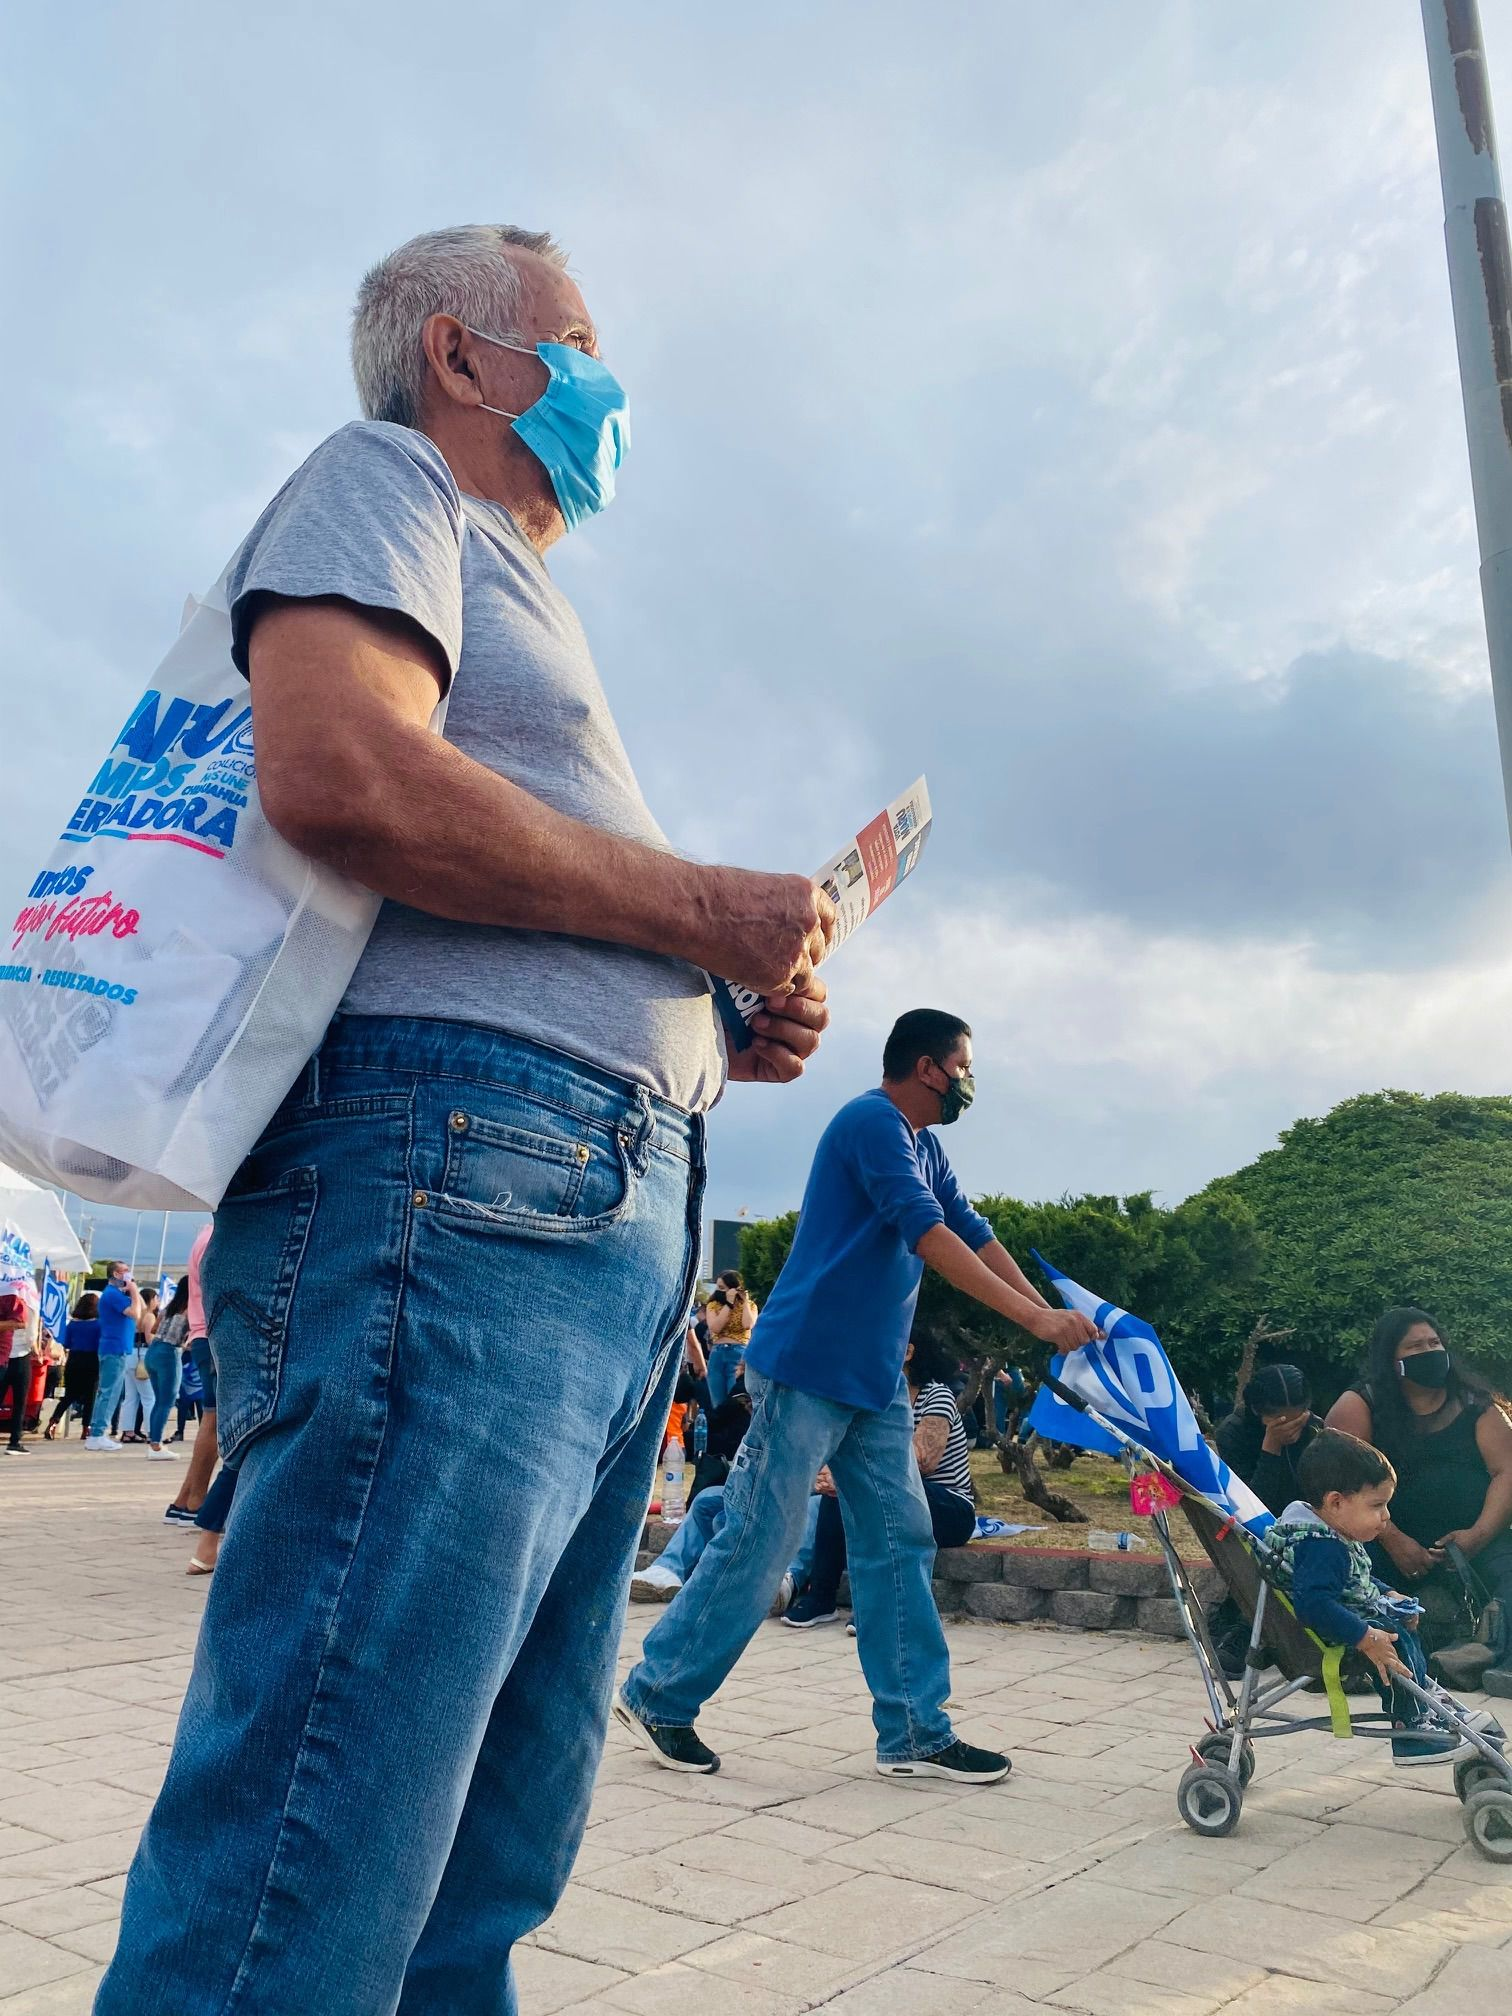 Bernardo Carrillo, 71, attended a June 2 rally for the National Action Party, or PAN. He has supported PAN for more than three decades and is fearful of the rise of President Andrés Manuel López Obrador's party, Morena.